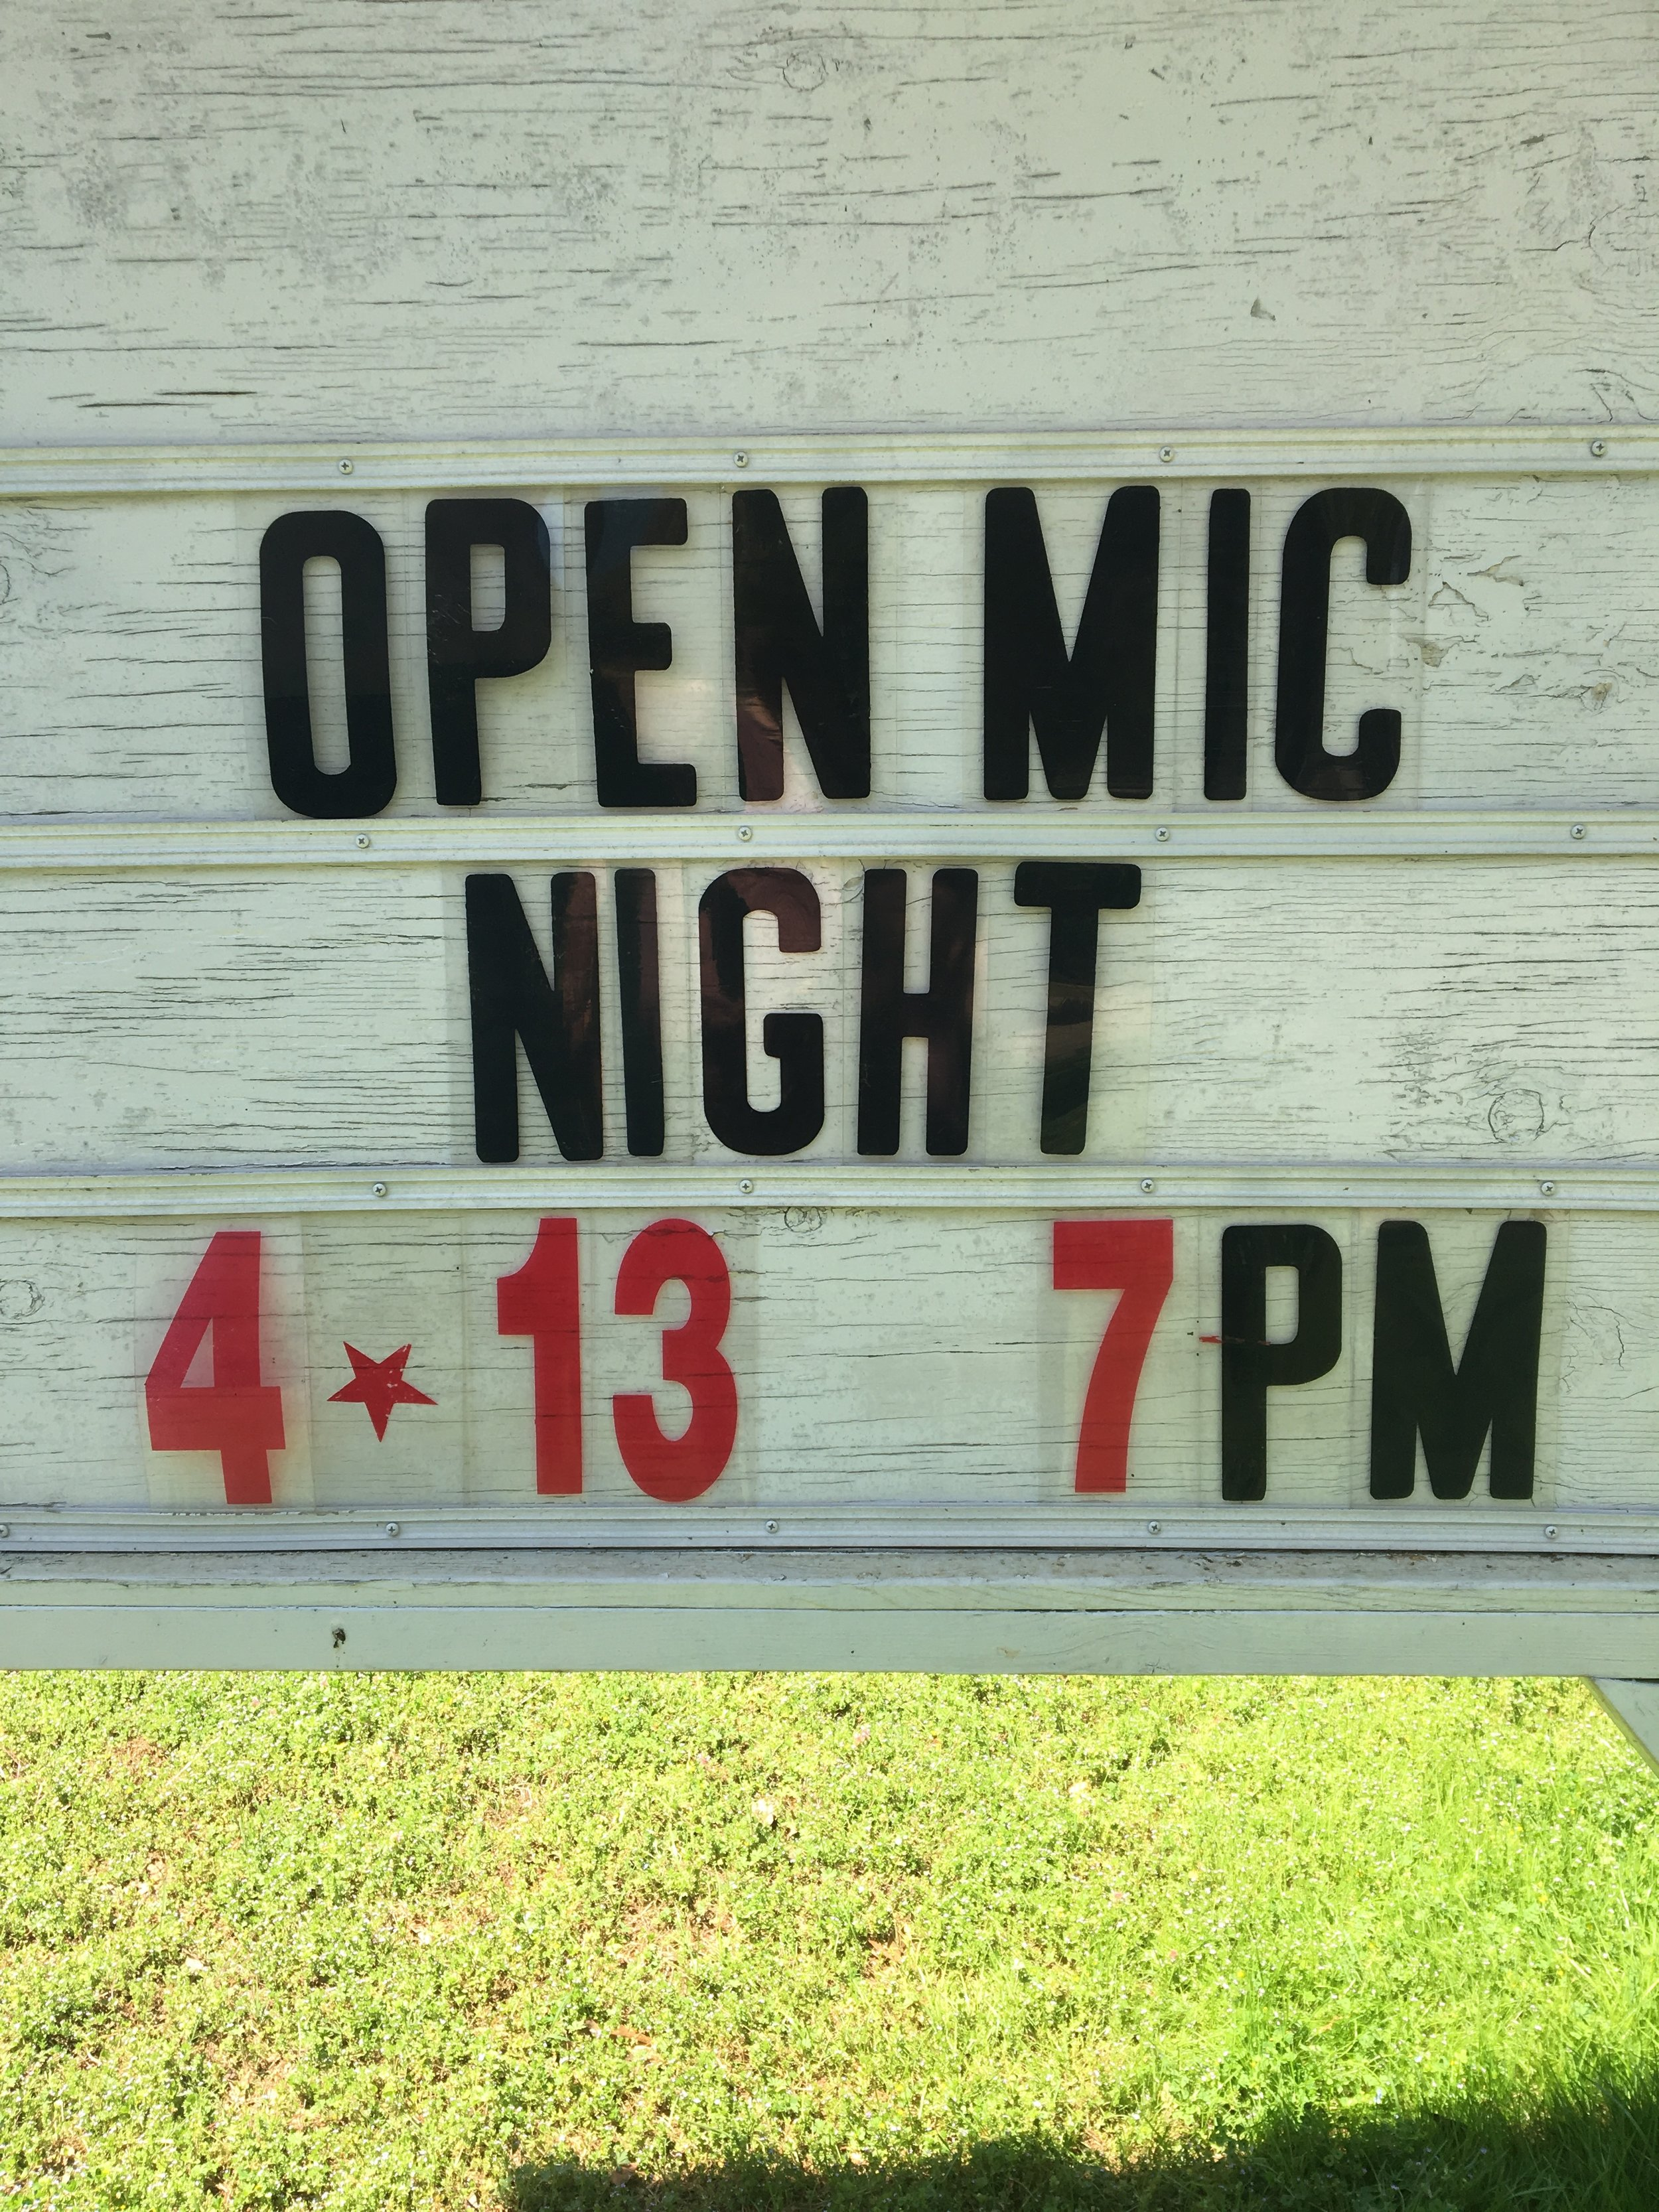 We even have open mic night. The second Friday of each month.